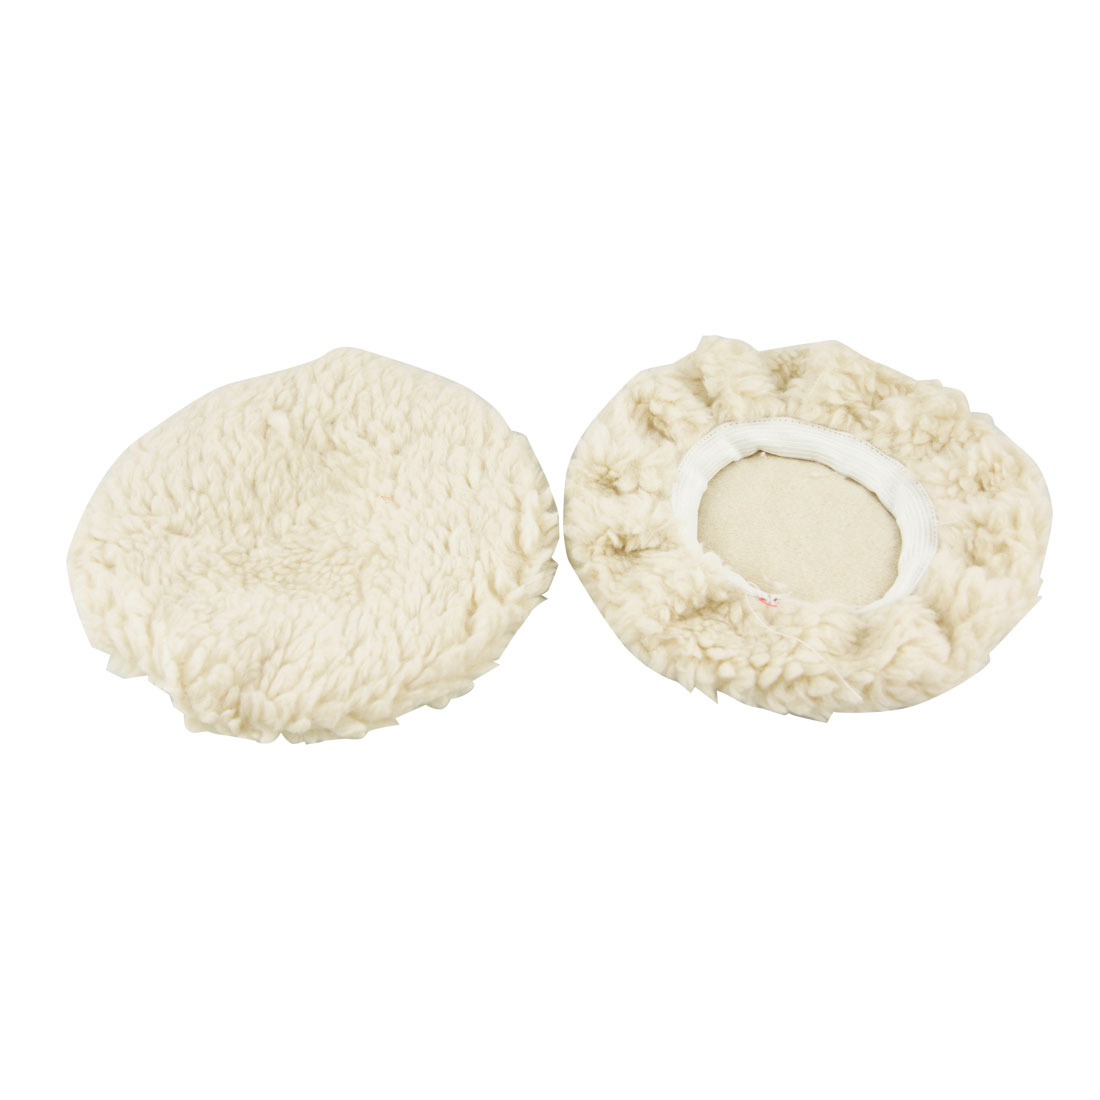 "2 Pcs 6"" Dia Off White Faux Wool Vehicle Car Detailing Buffing Polishing Pad"